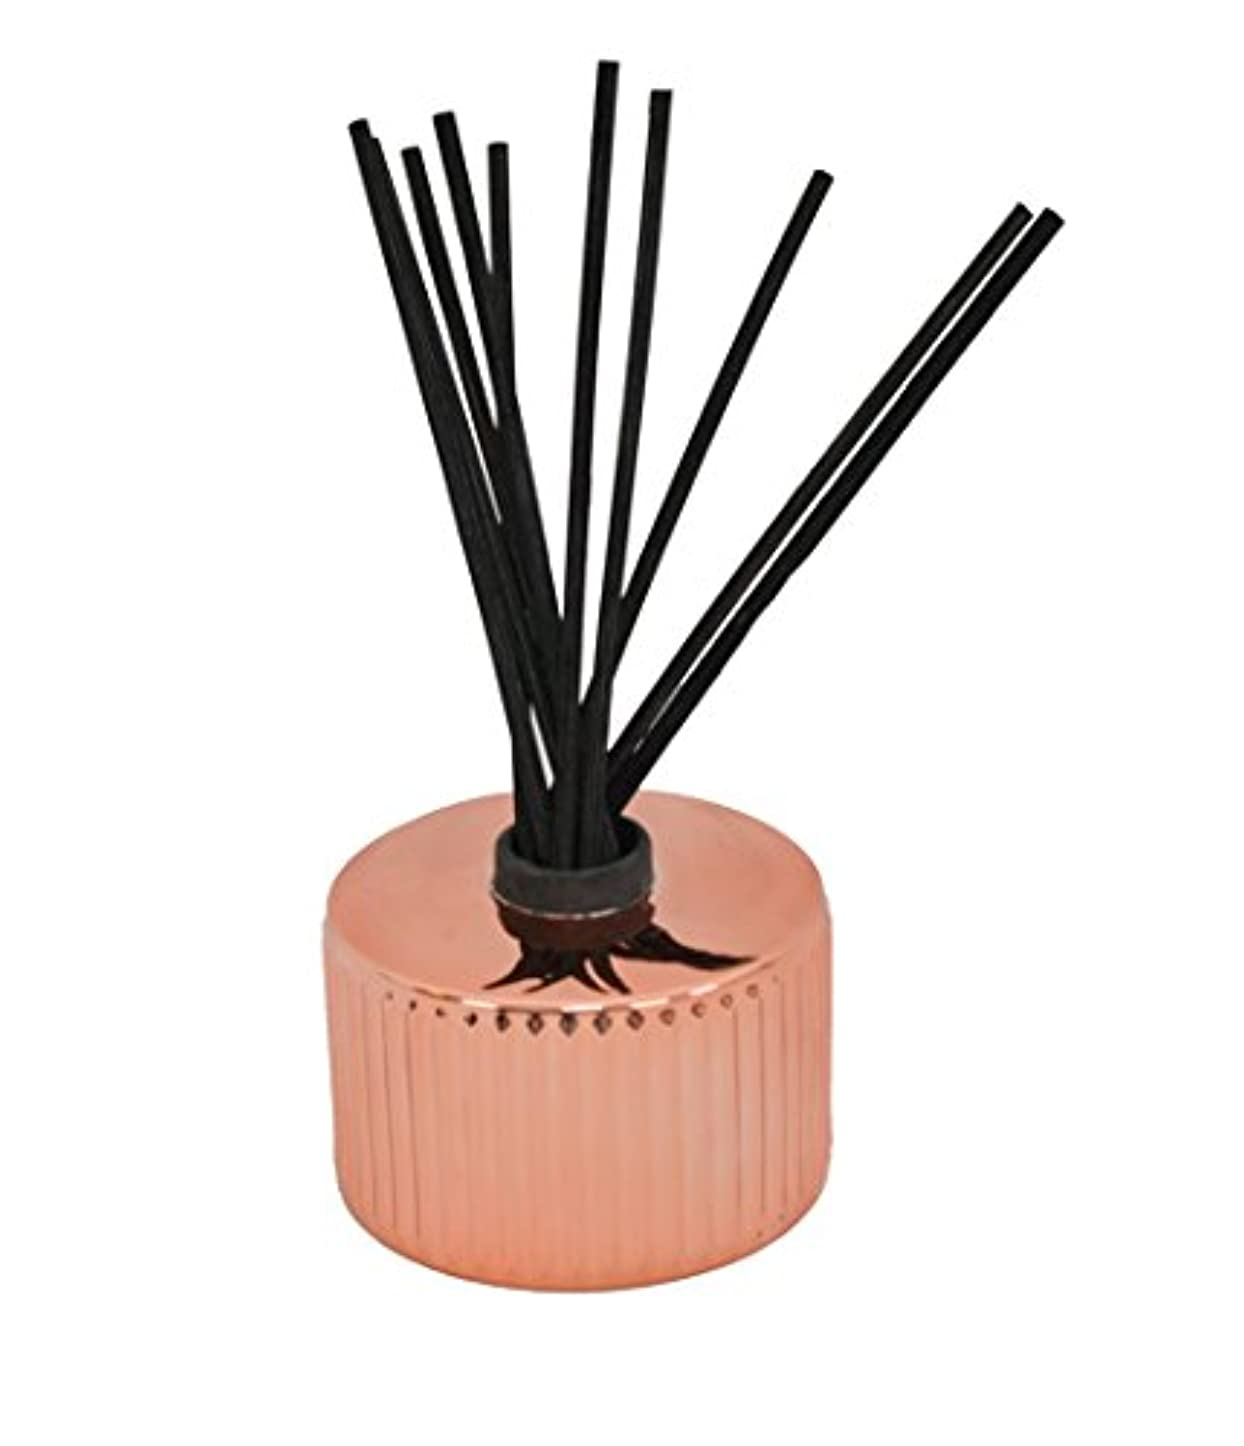 クールスピンブレイズCapri Blue Gilded Muse Reed Diffuser - Pink Grapefruit & Prosecco 230ml/7.75oz並行輸入品